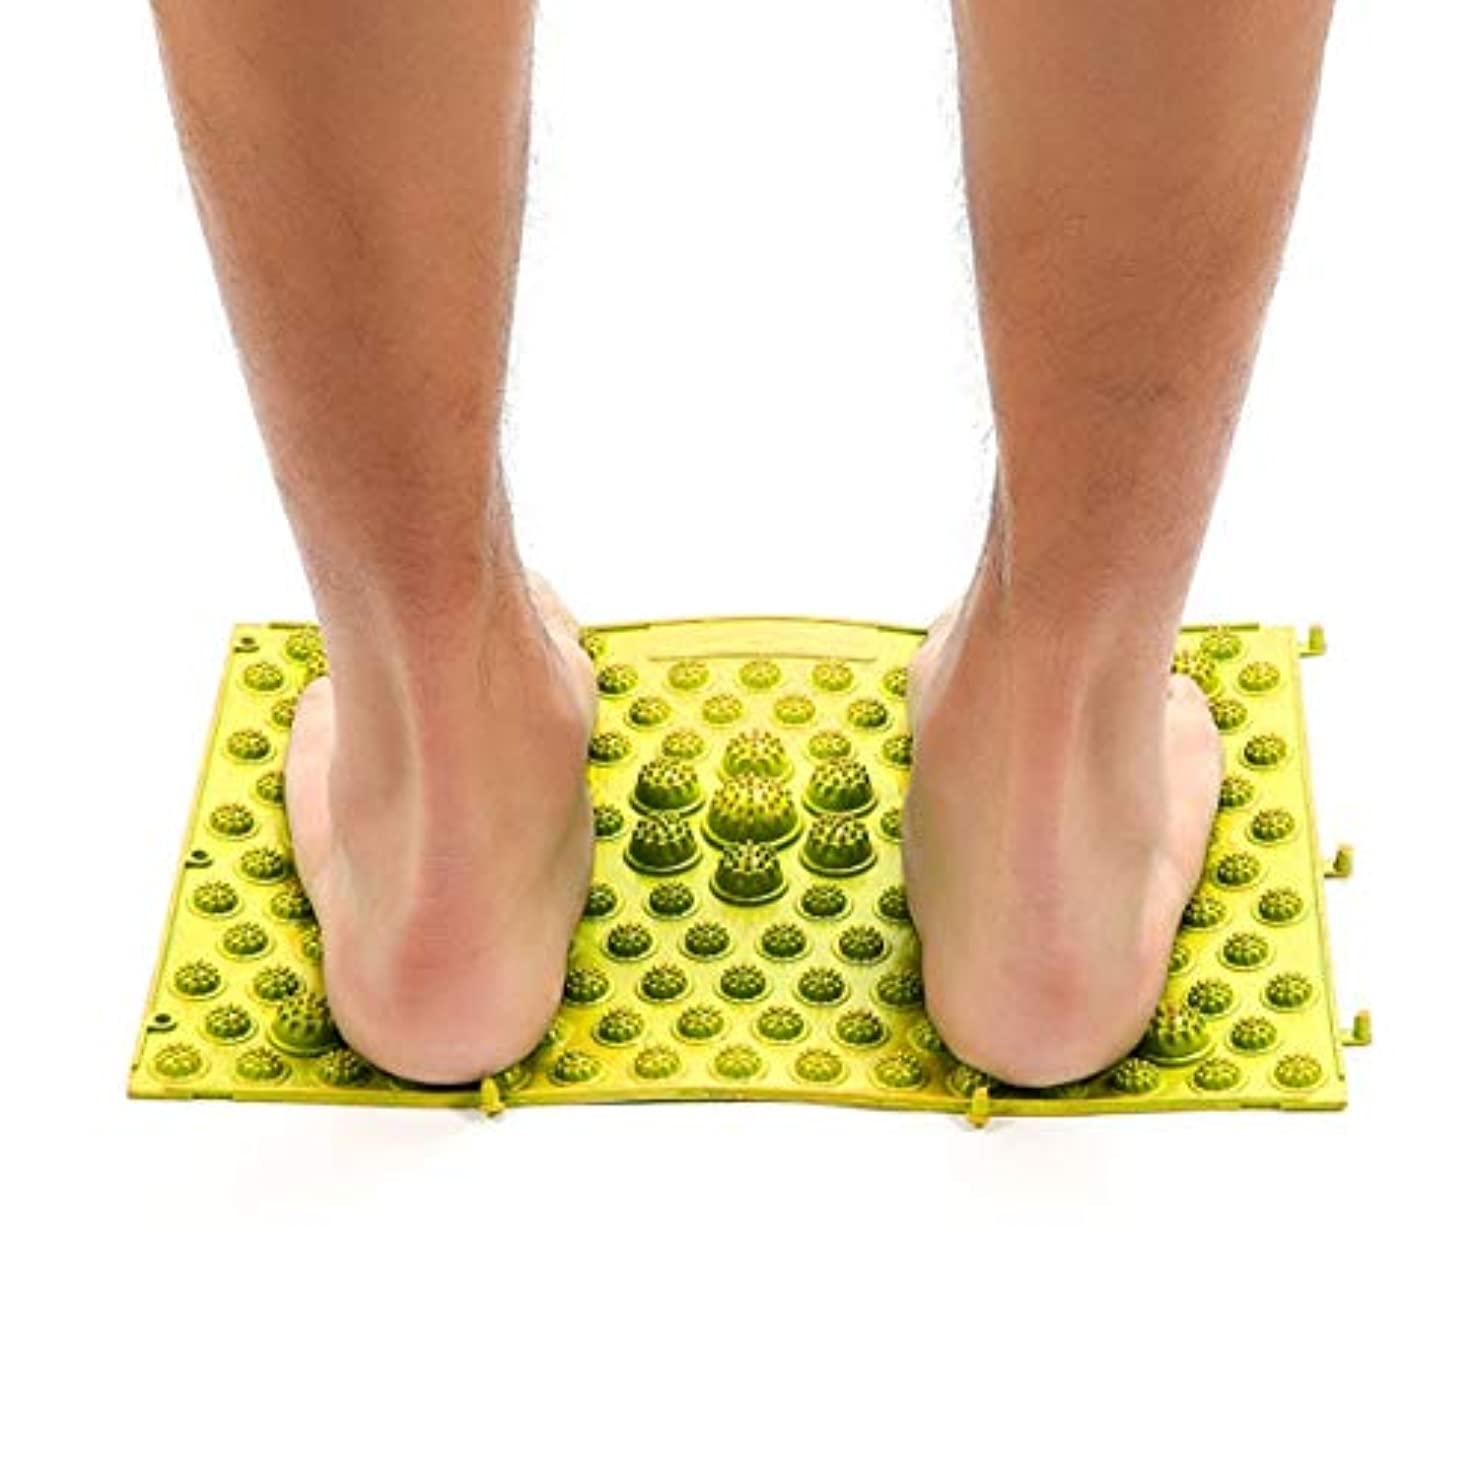 絡み合いつかむダメージAcupressure Foot Mats Running Man Game Same Type Foot Reflexology Walking Massage Mat for Pain Relief Stress Relief...